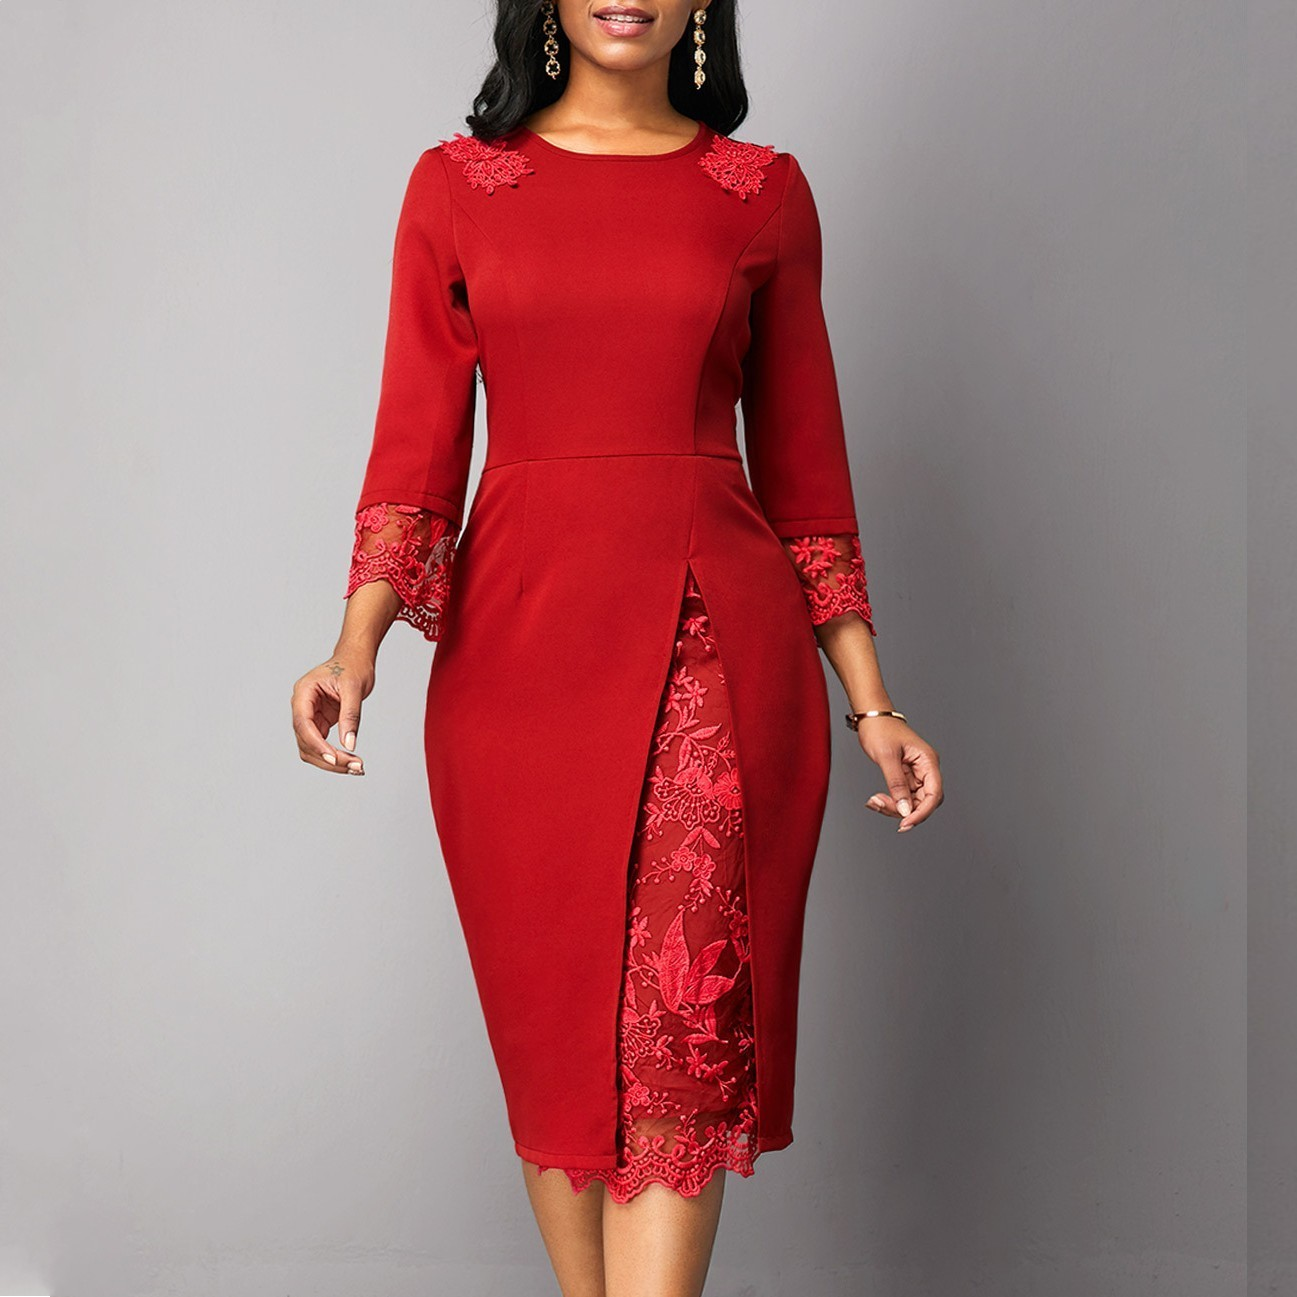 African Clothes 2020 Elegant Red Dress Women Office Lady Plus Size 4XL 5XL O-Neck Bandage Bodycon Pencil Dress Robe High Quality